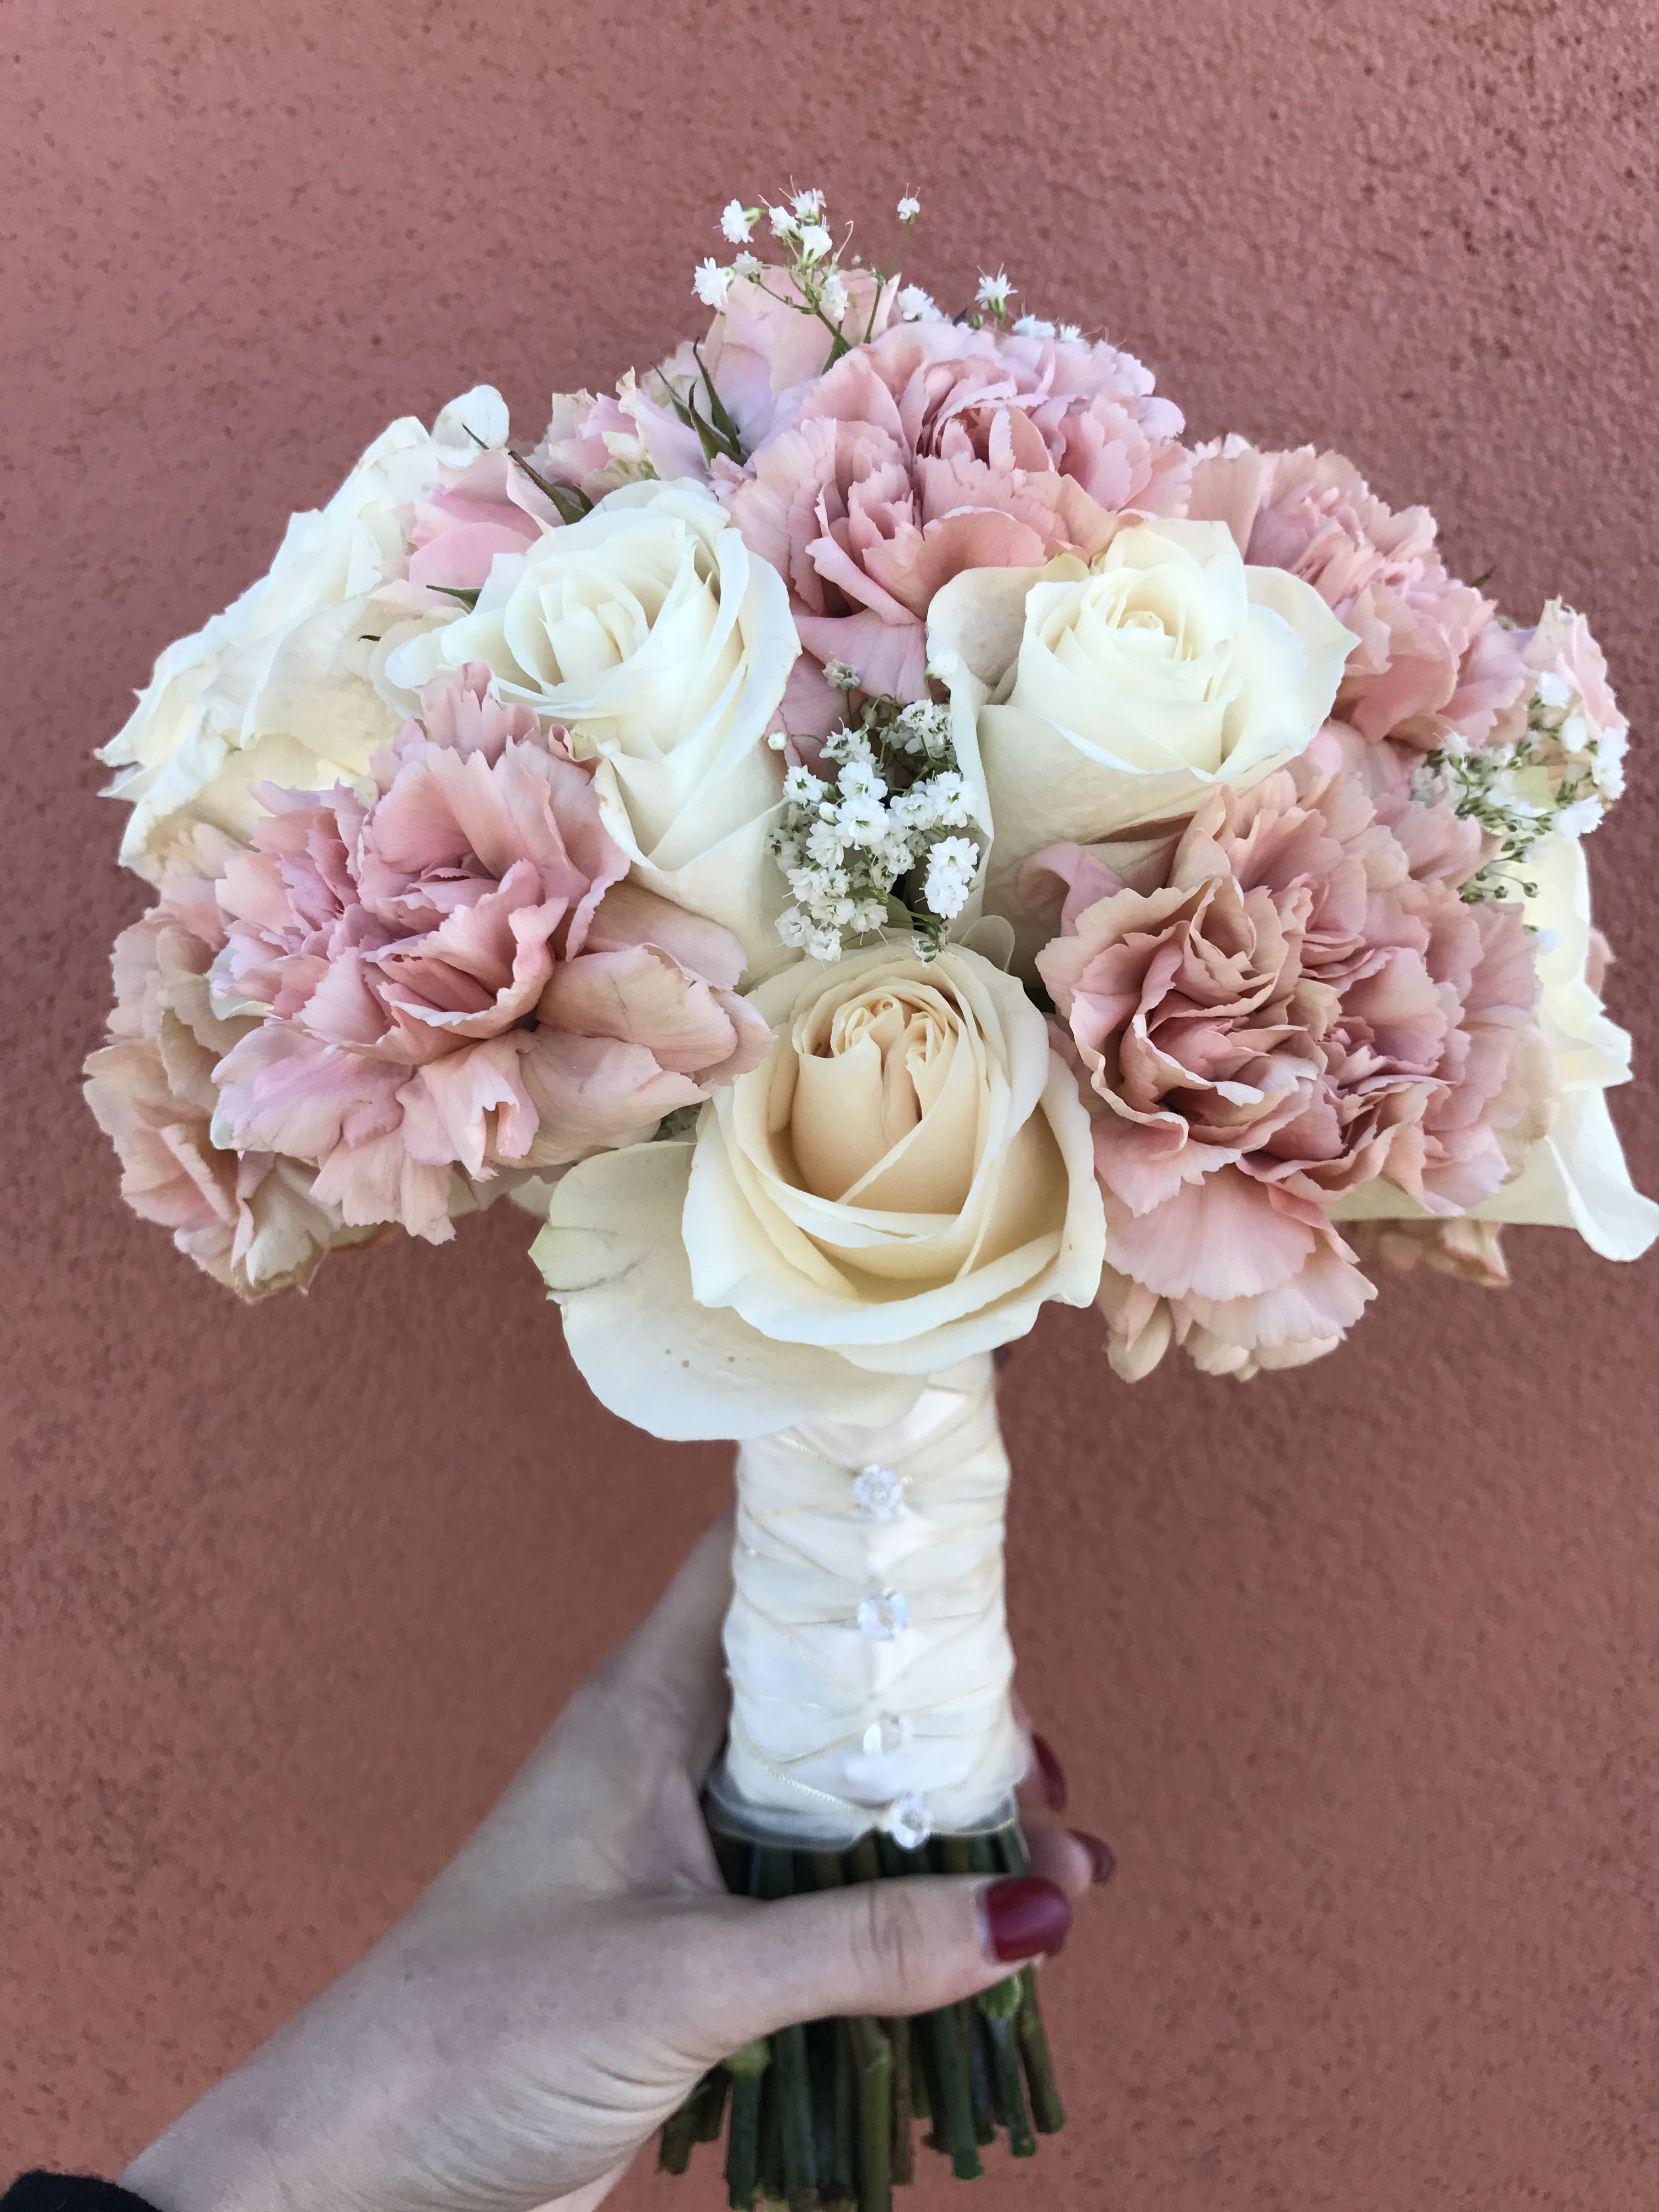 Bridal Bouquet Roses Carnations And Baby S Breath Carnation Wedding Carnation Wedding Flowers Flower Bouquet Wedding